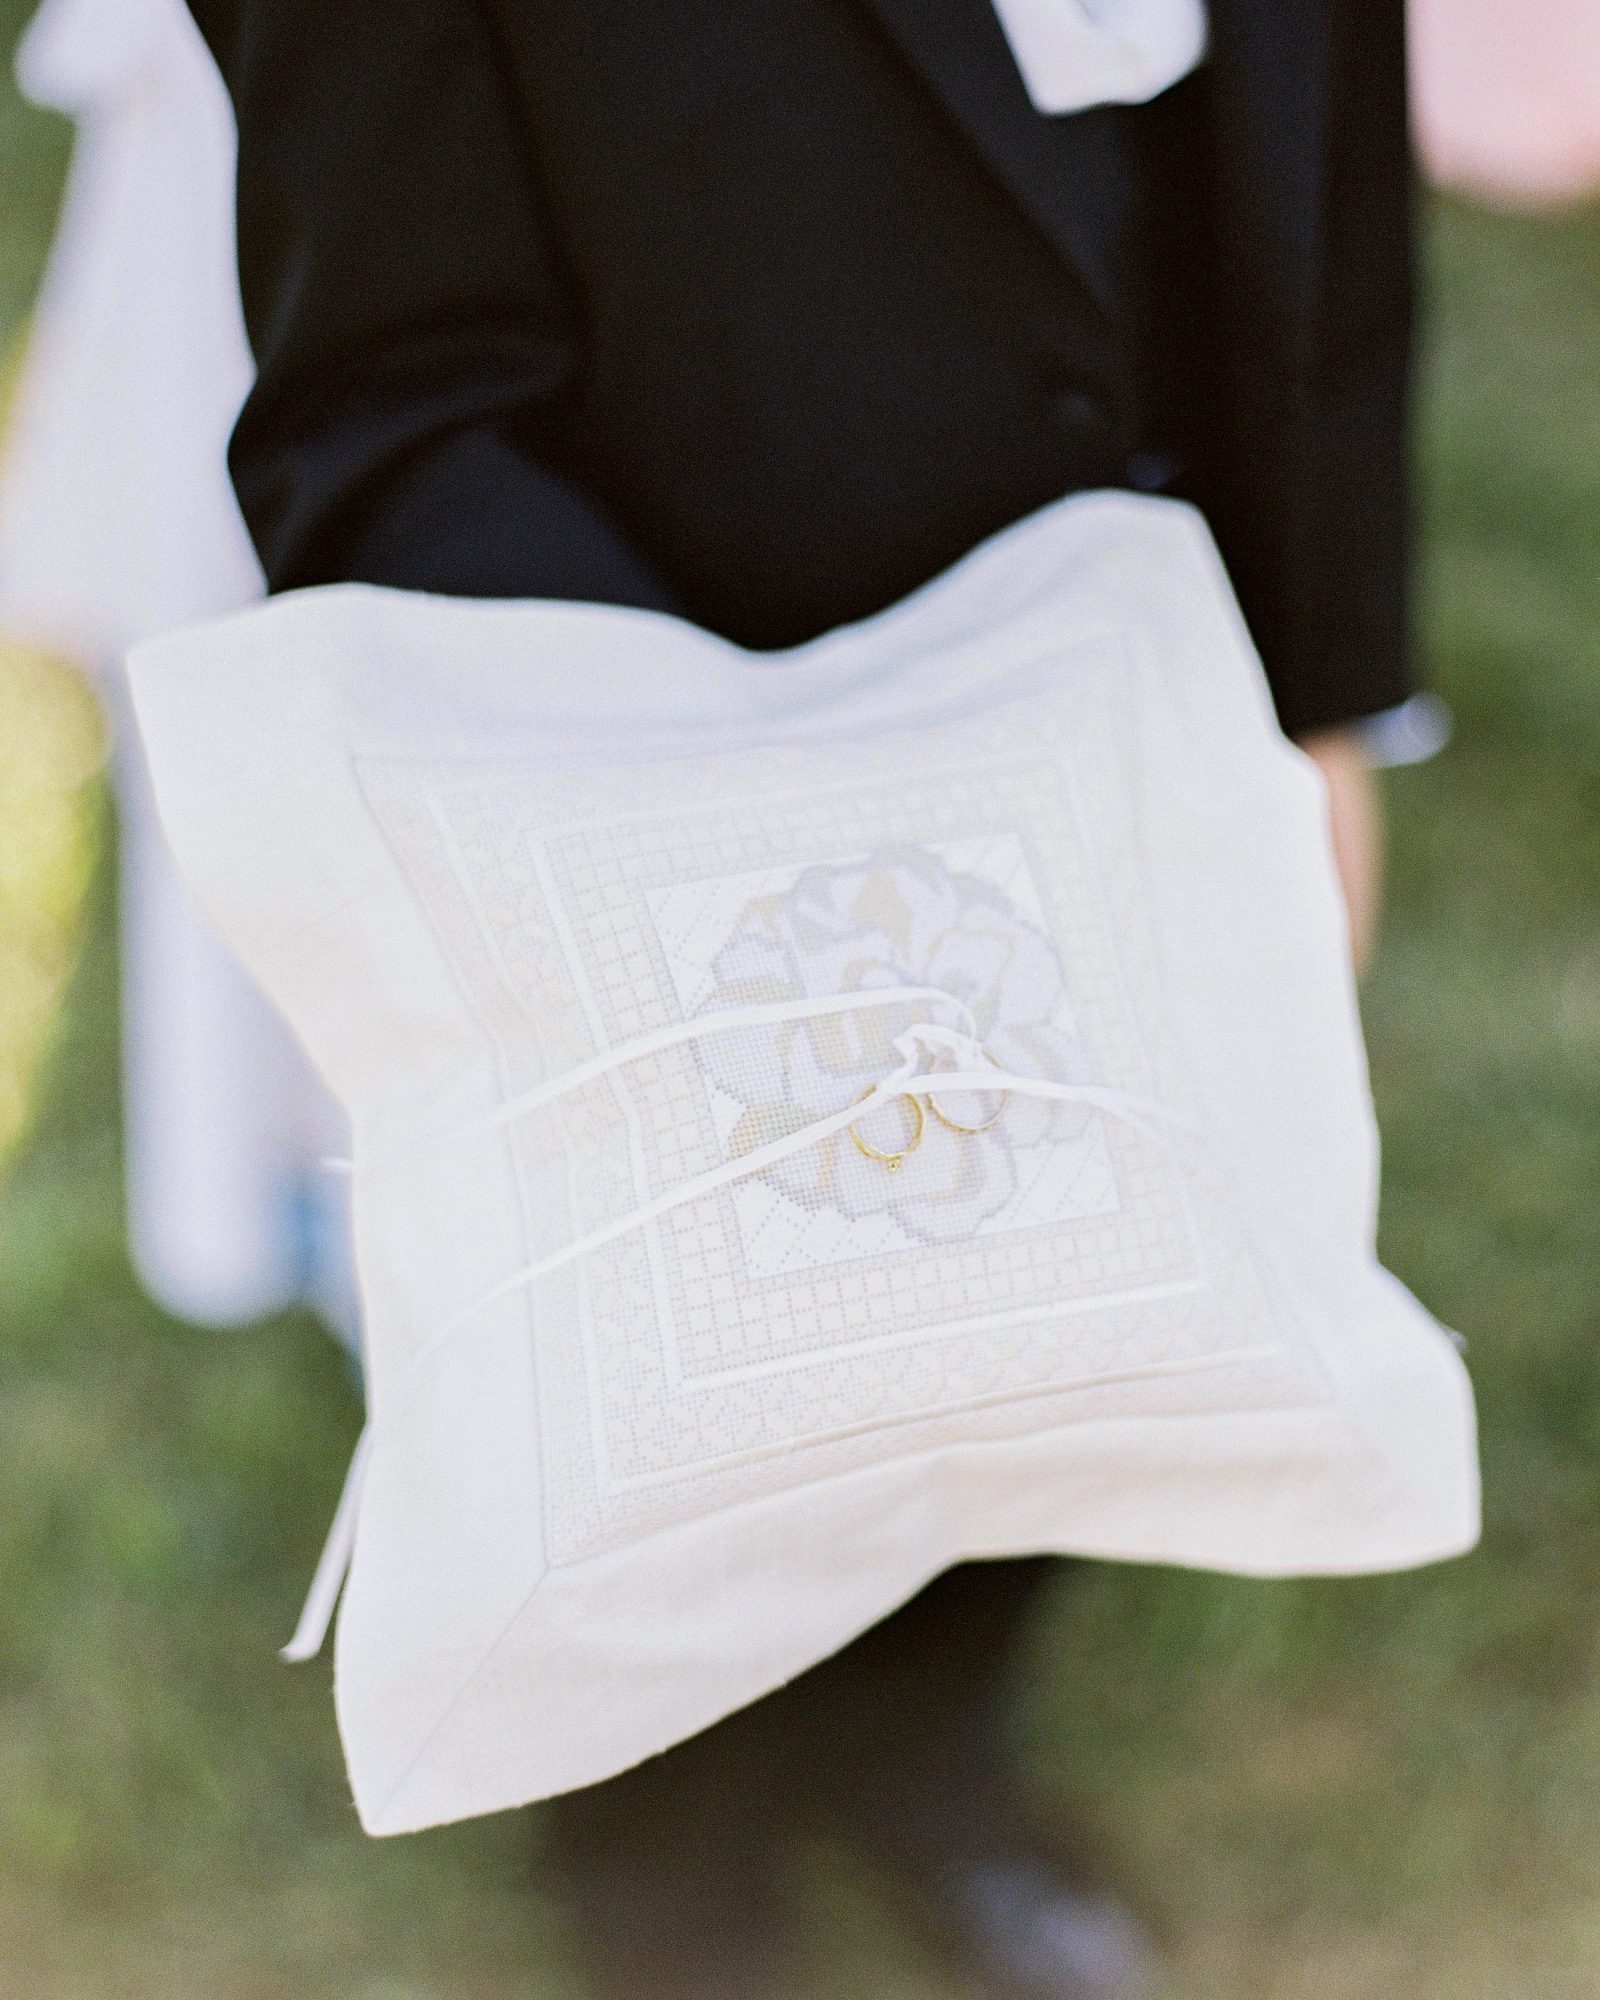 amy-garrison-wedding-ringpillow-00636-6134266-0816.jpg